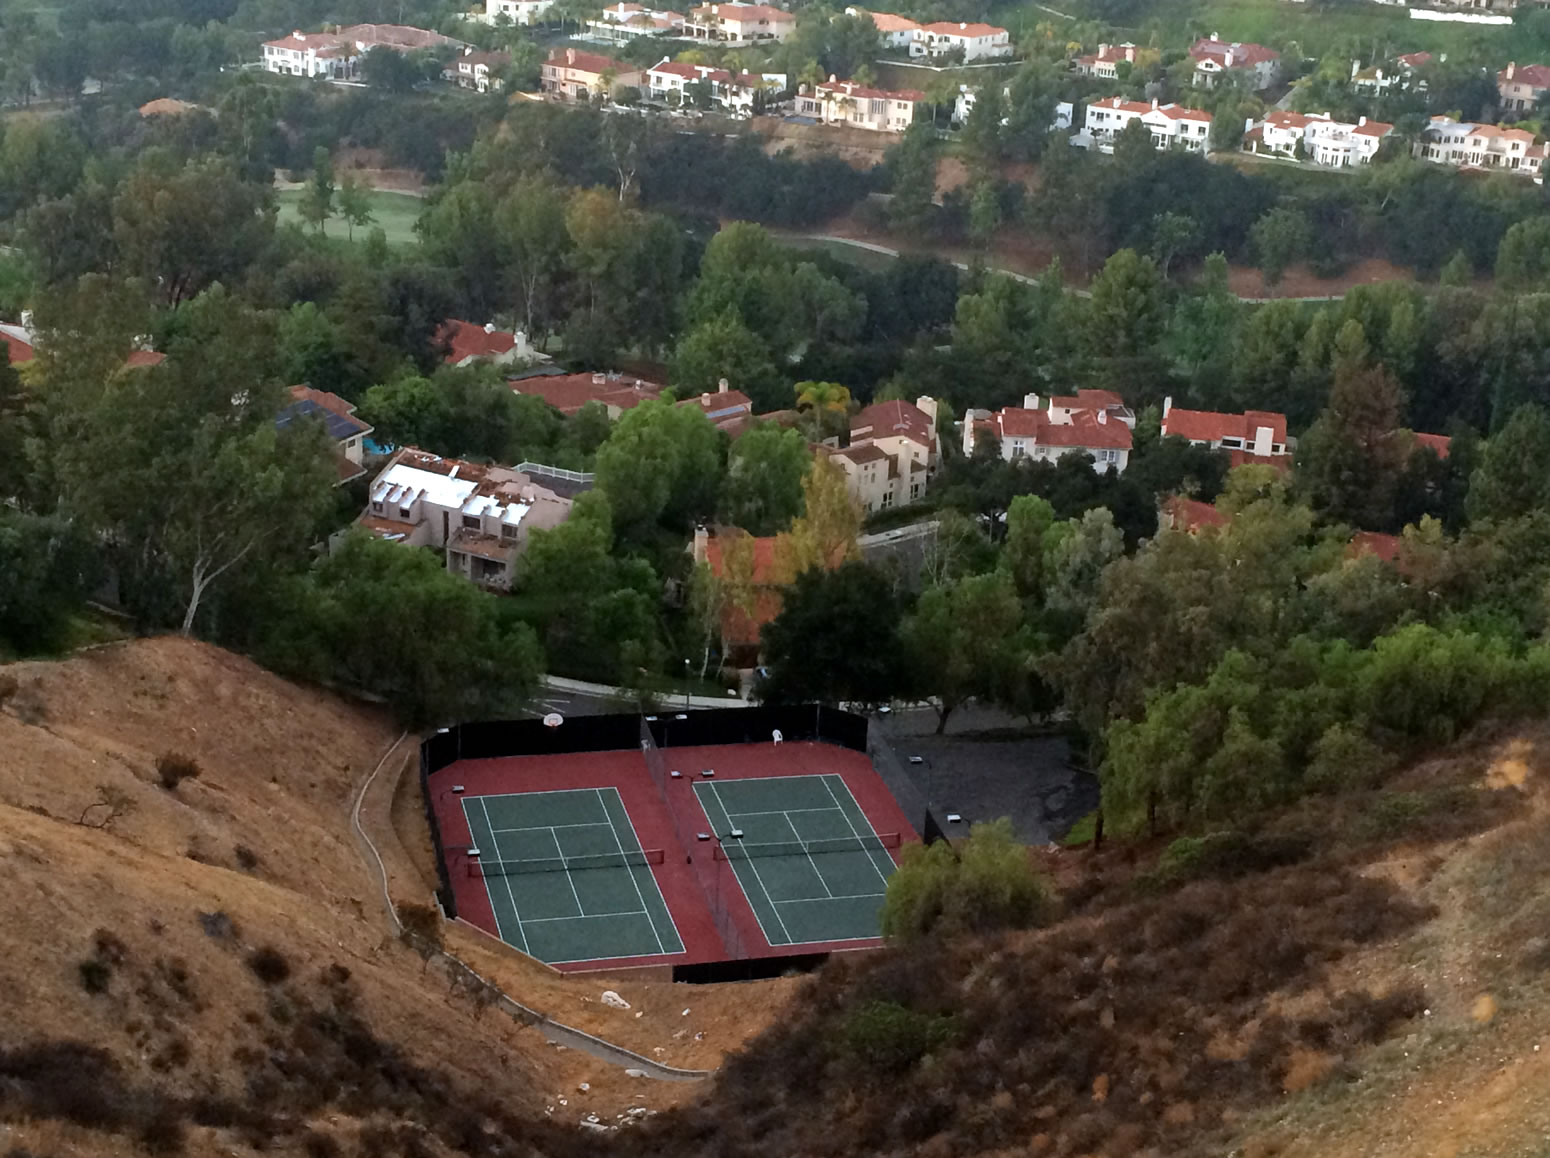 lower-tennis-courts_aerial_1550x1158